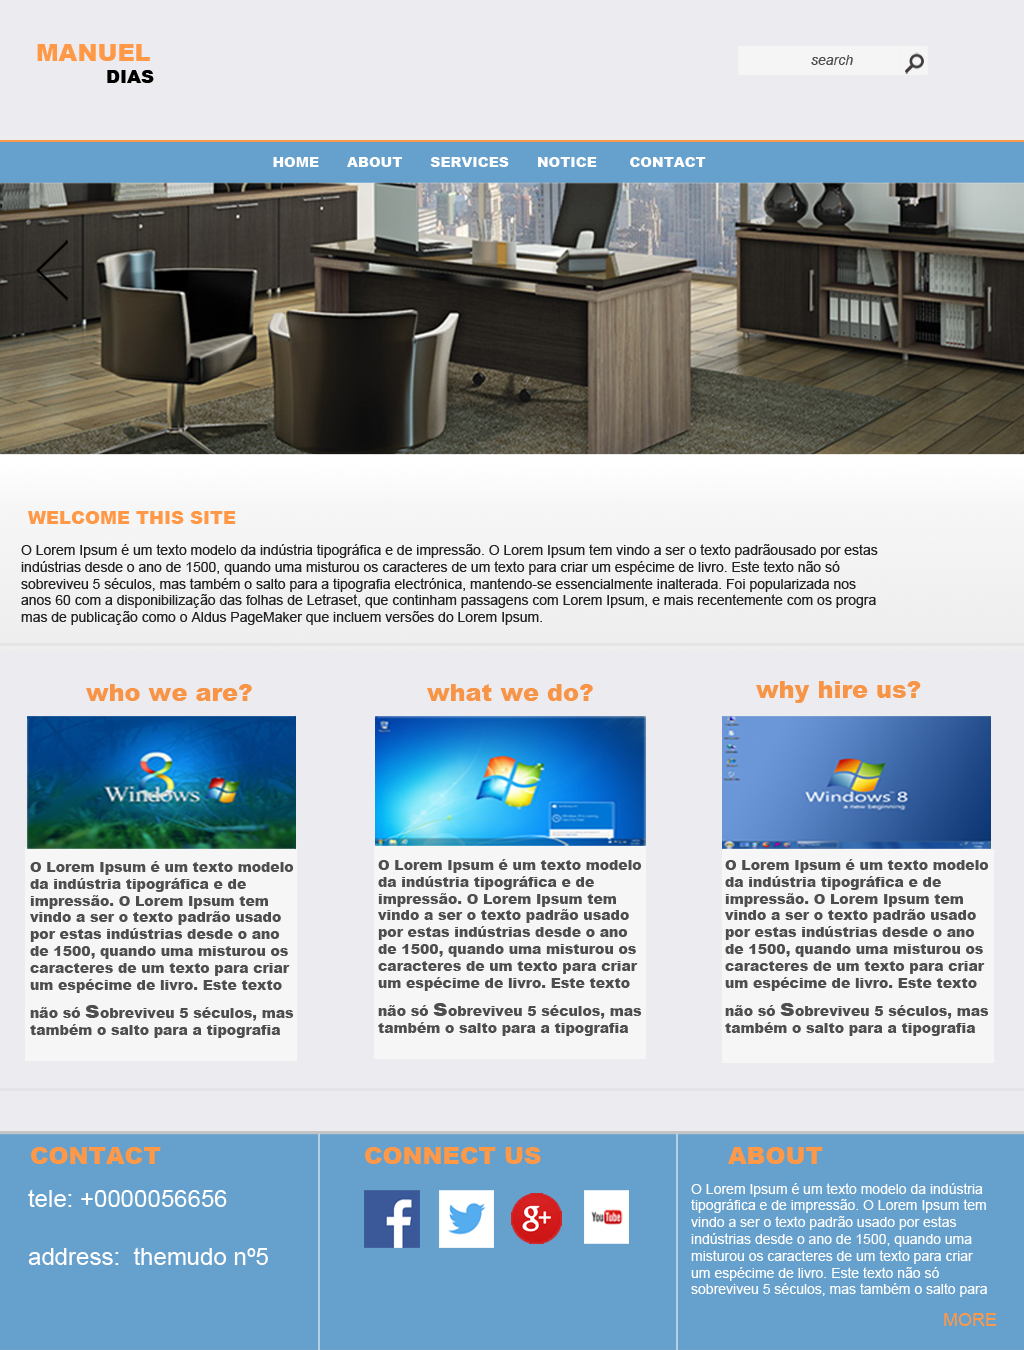 improve your project with my website.